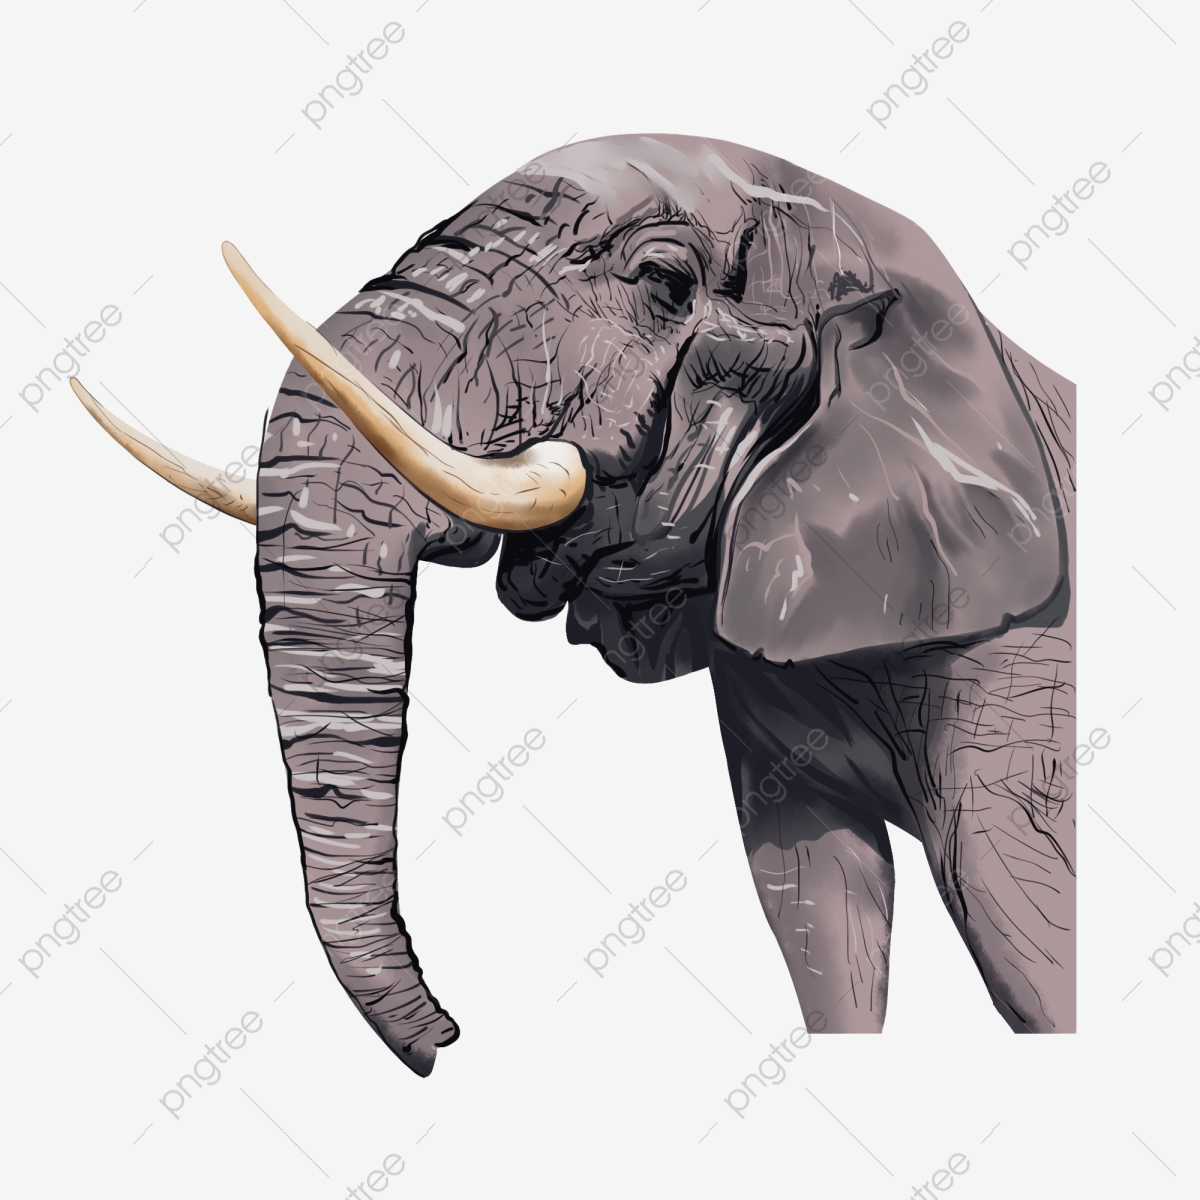 Ivory Png Images Vector And Psd Files Free Download On Pngtree I make this in any color. https pngtree com freepng elephant nose ivory 5403992 html